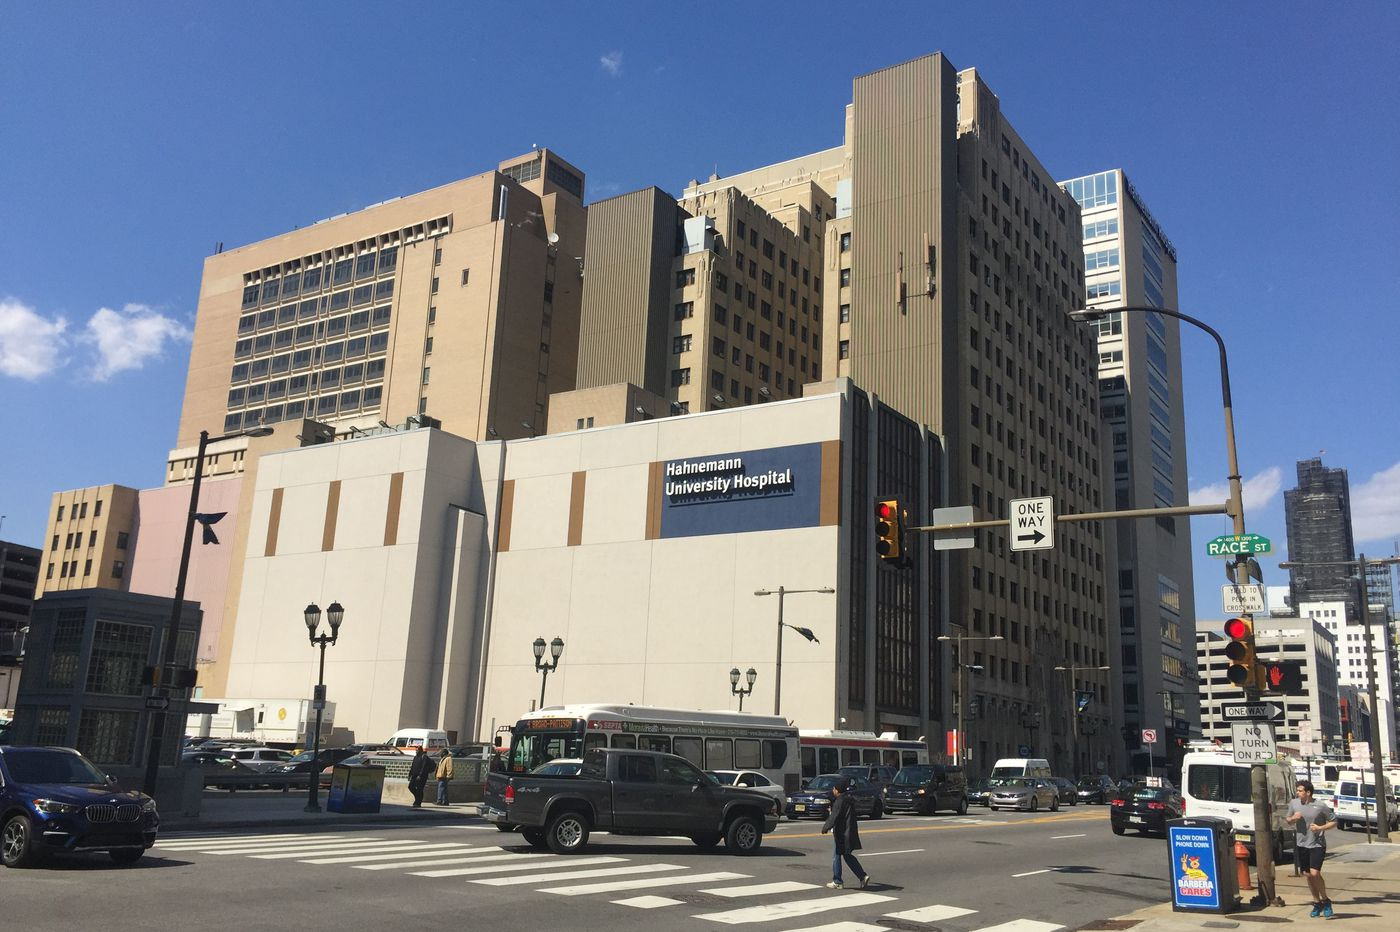 PA hospital to lay off 175 employees amid financial troubles